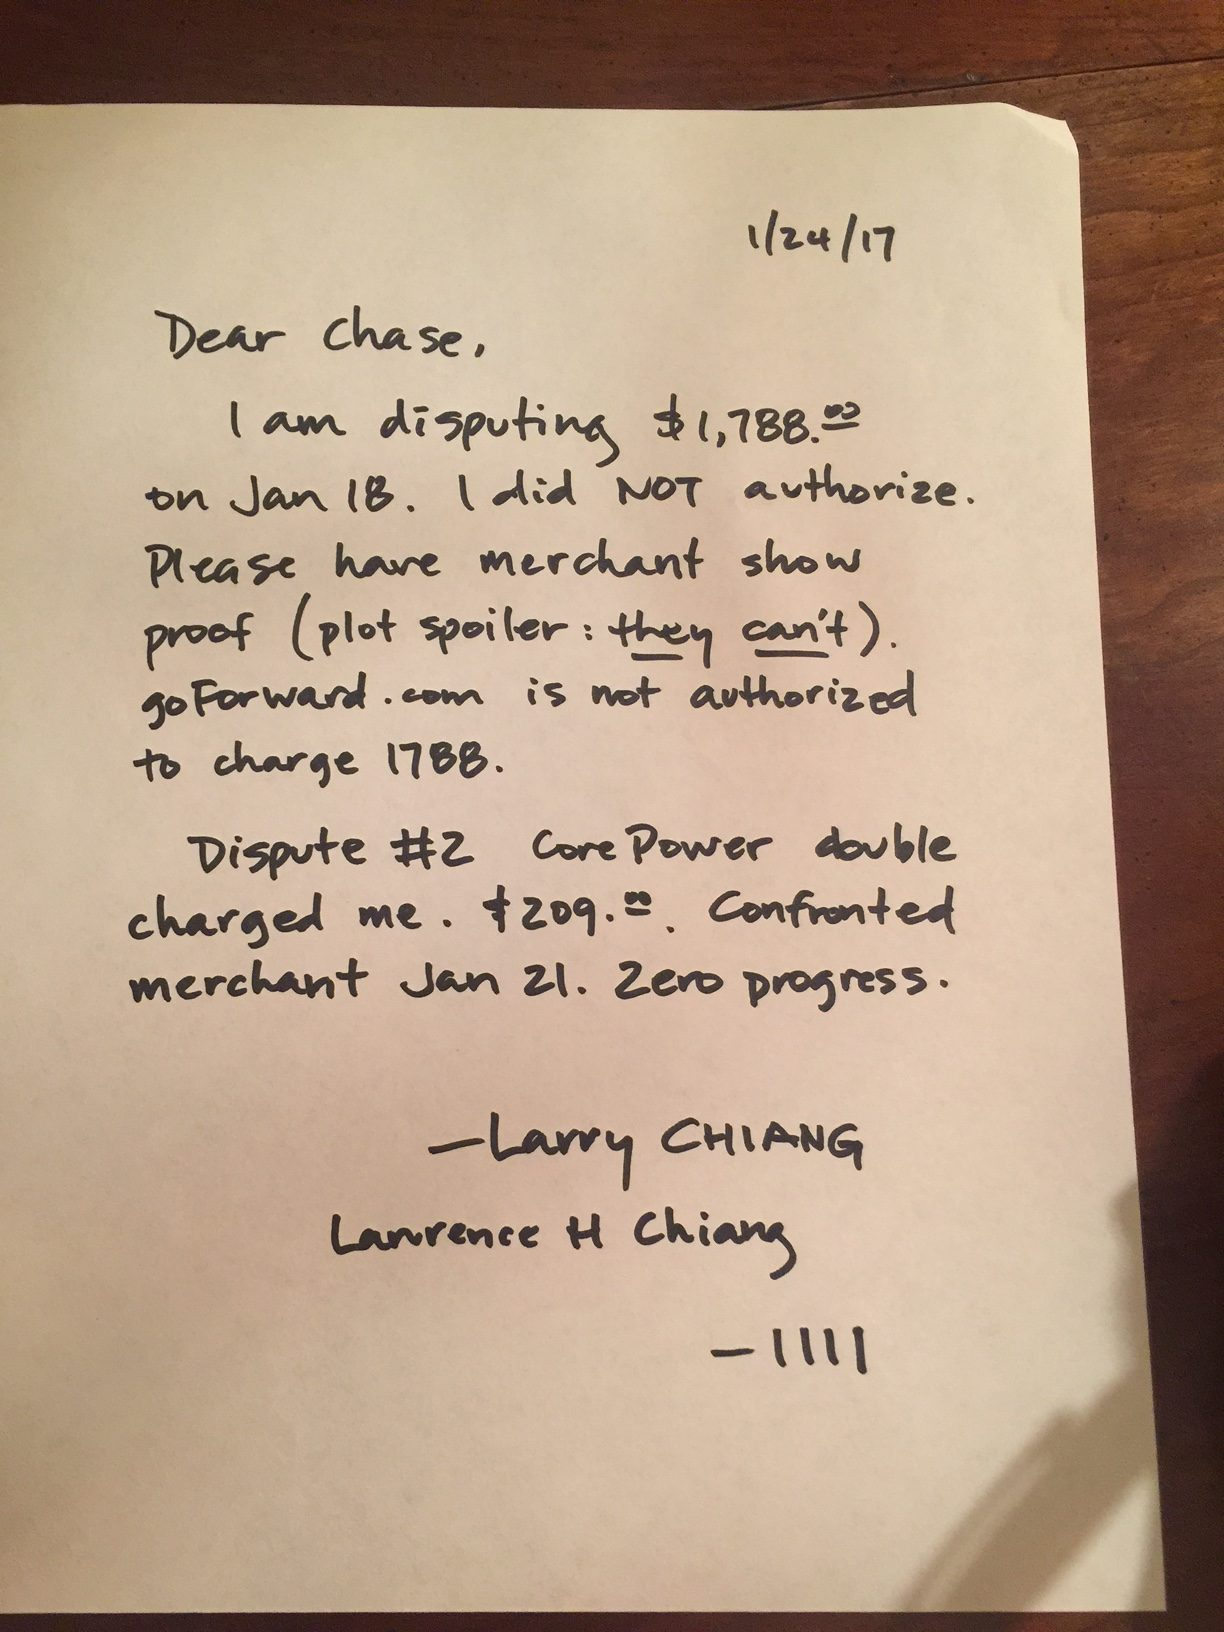 merchant-dispute-letter-chase-duck9-larry-chiang